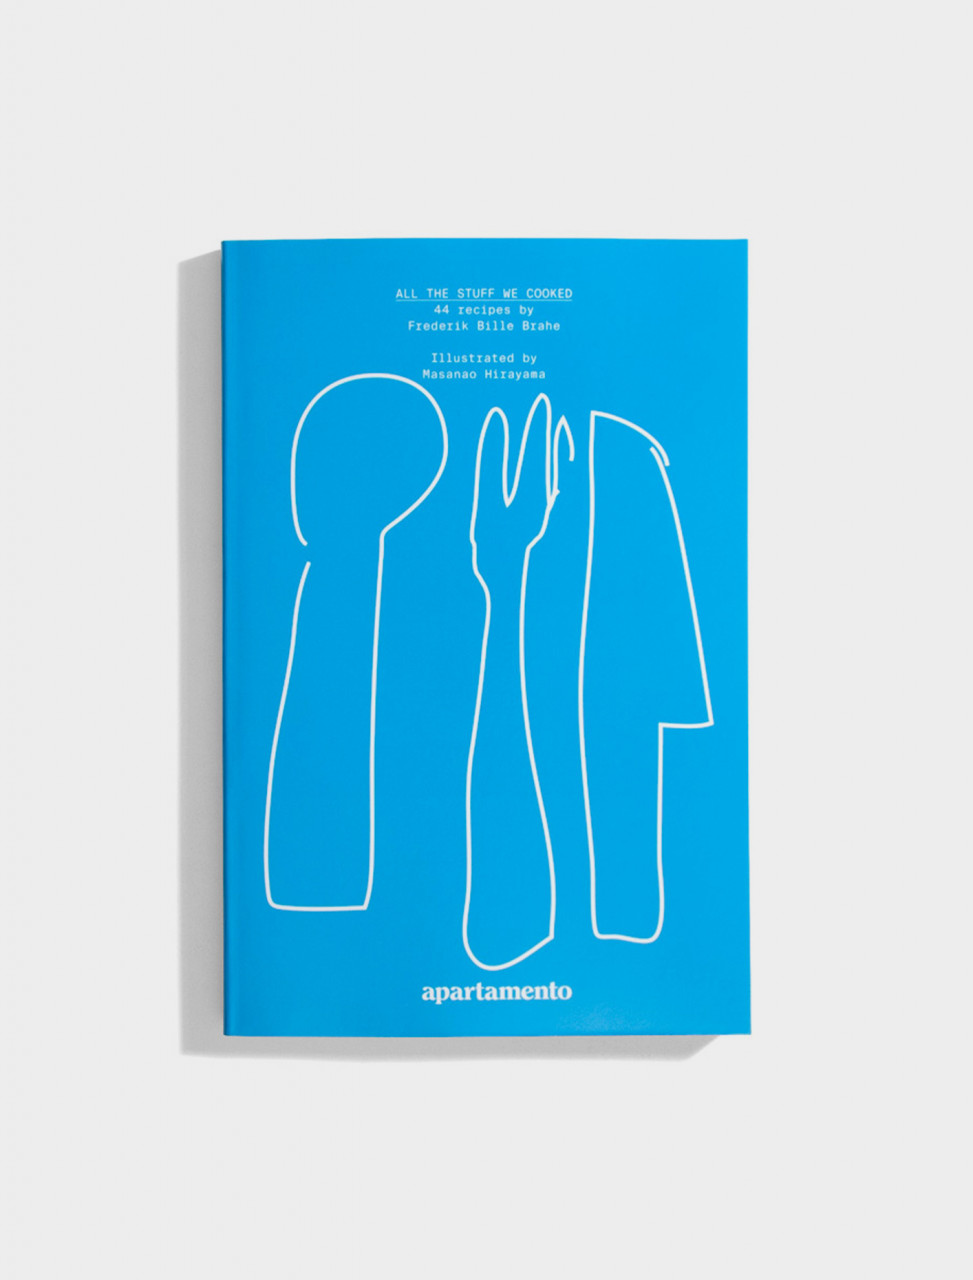 9788409204700 All the Stuff We Cooked, Frederik Bille Brahe